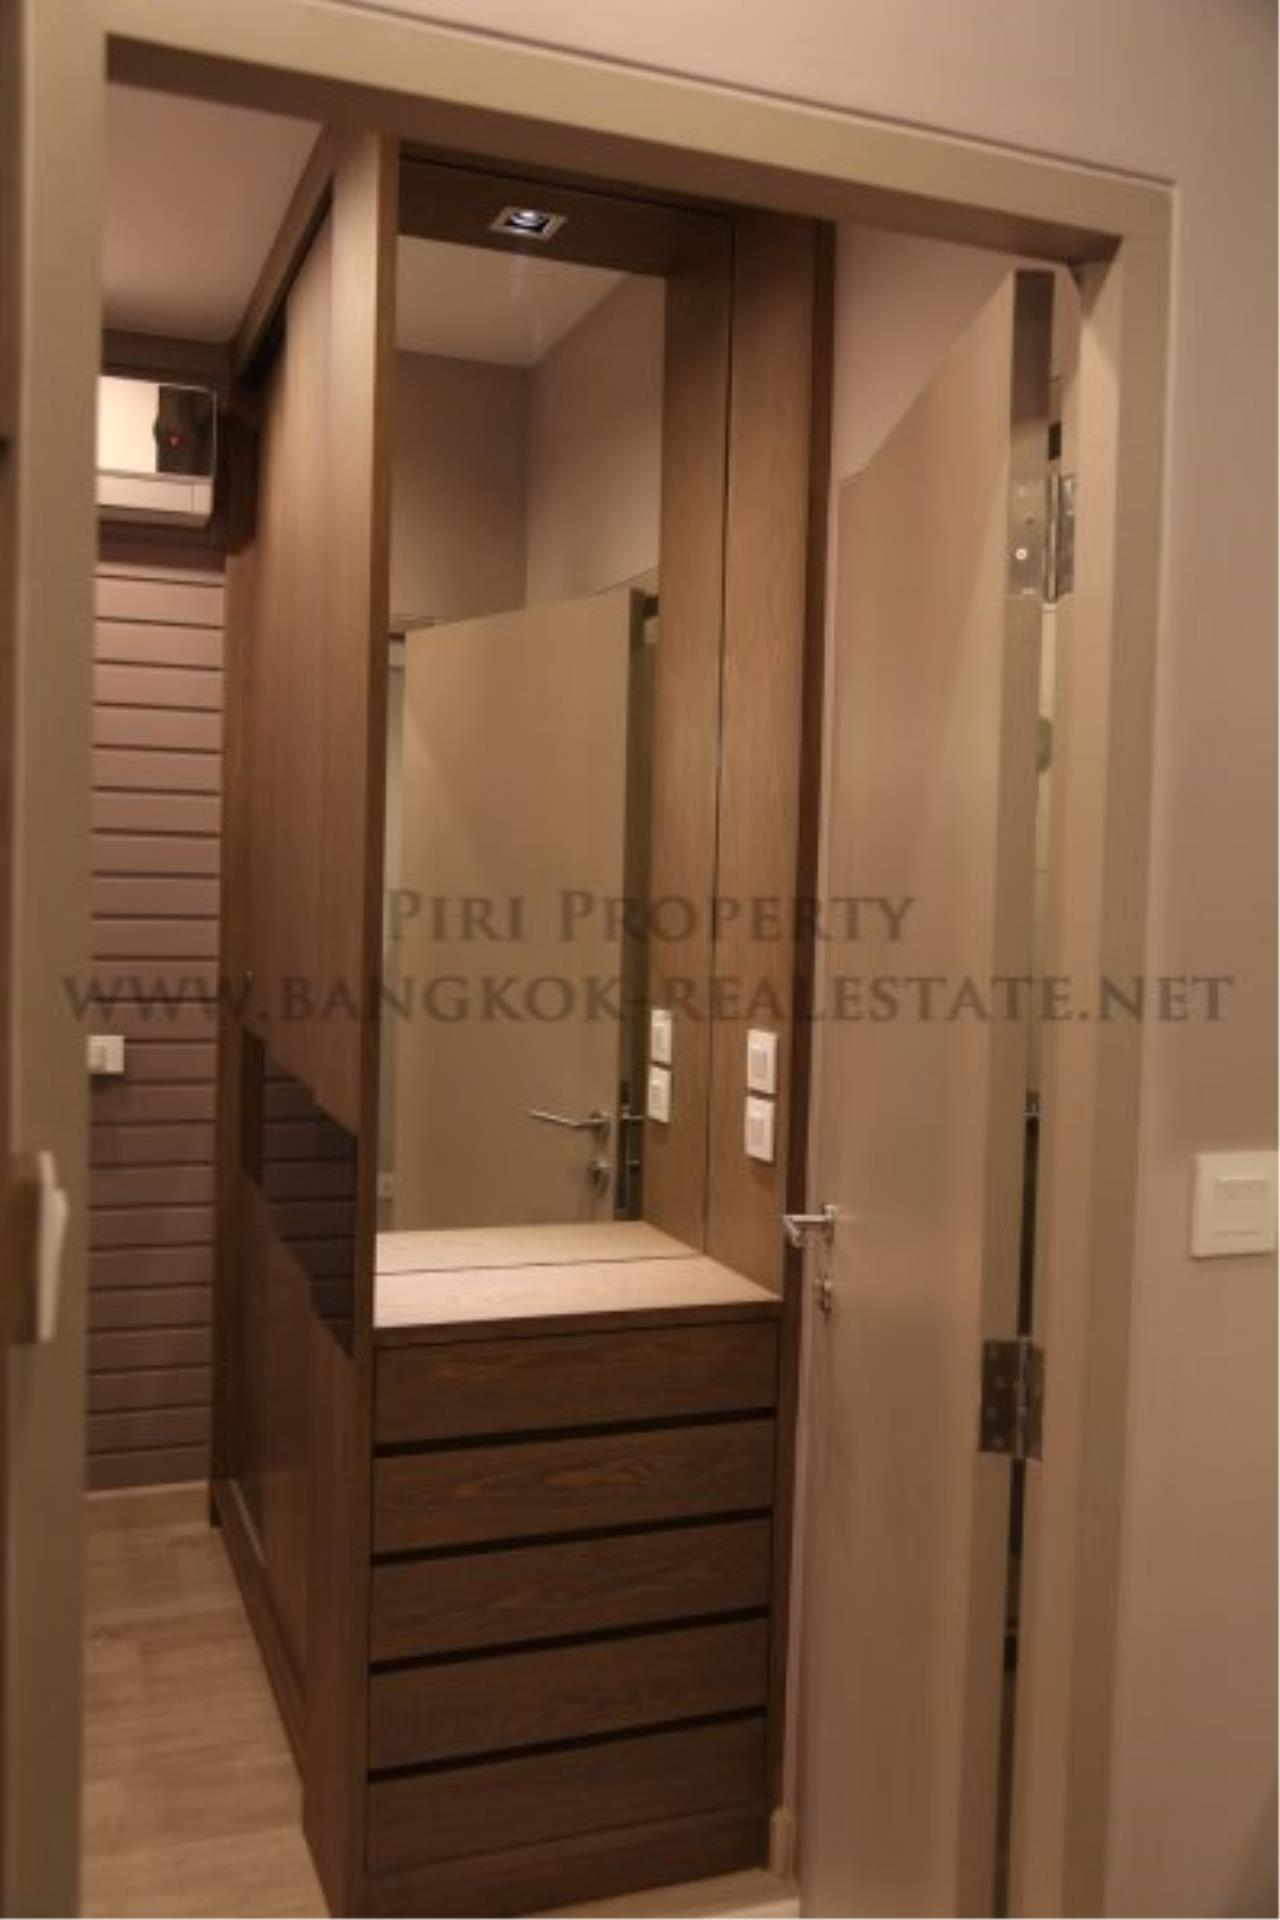 Piri Property Agency's IDEO Mobi Onnut - Nice 1 Bedroom Condo for Rent 7